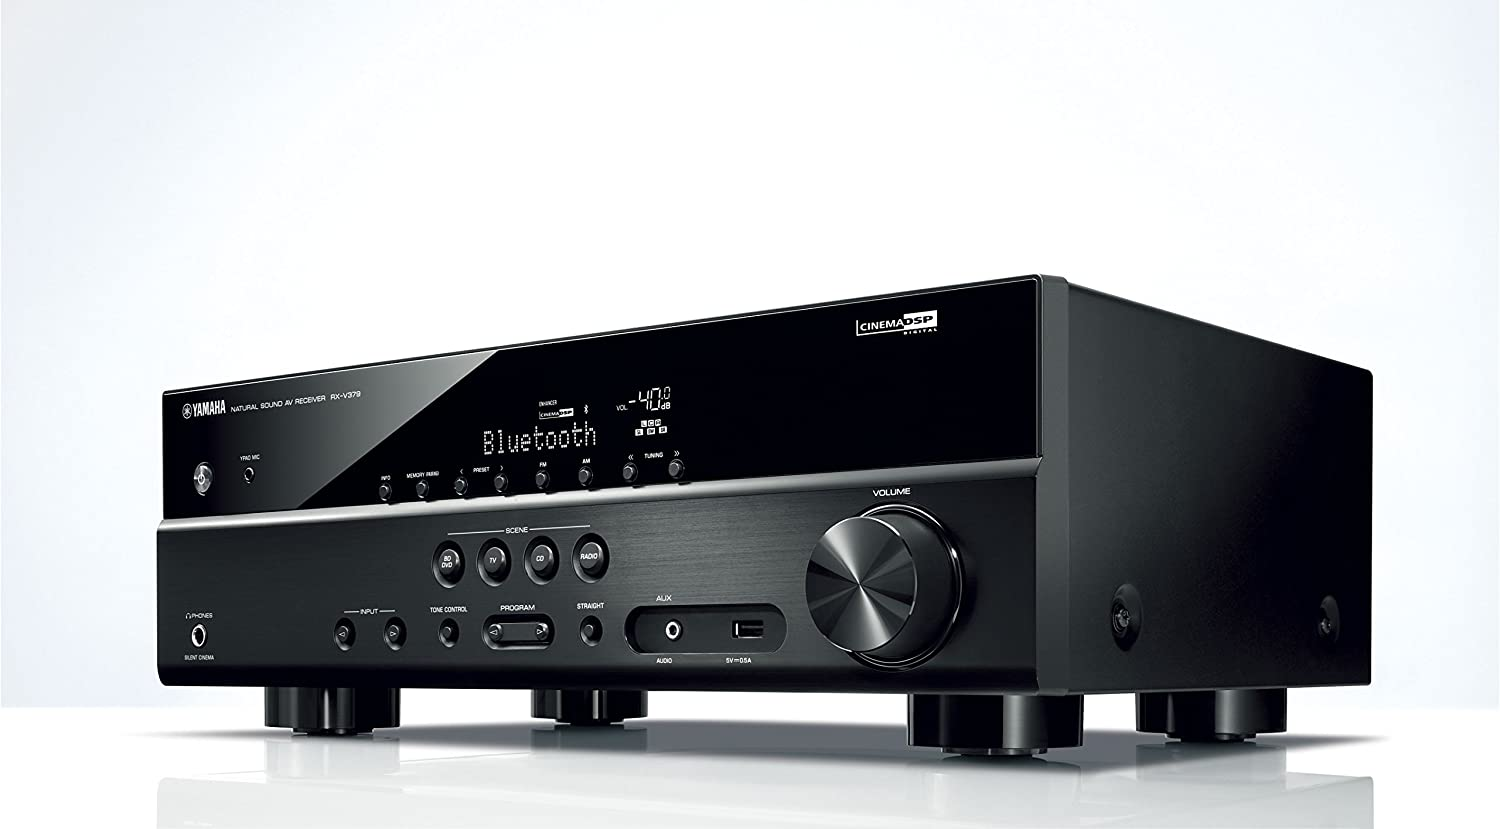 Amazon.com: YAMAHA RX-V379 5.1 channels amplifier AV receiver: Home Audio & Theater